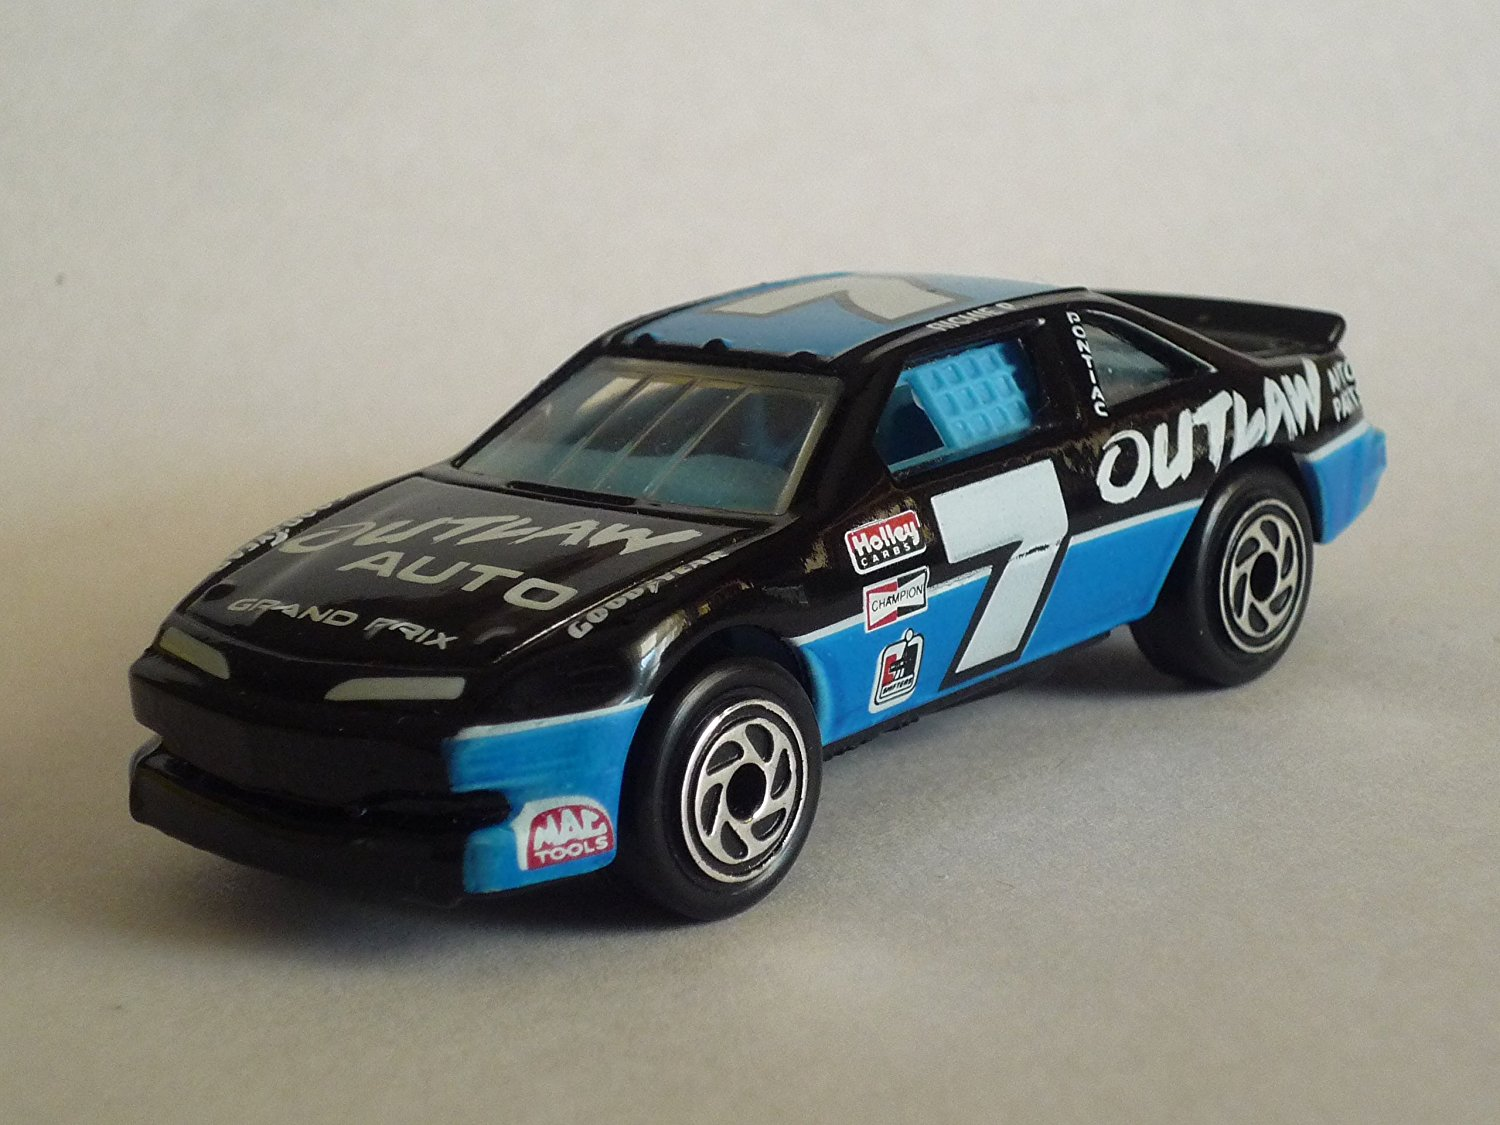 1995 #35 Pontiac Stock Car, By Matchbox Ship from US by